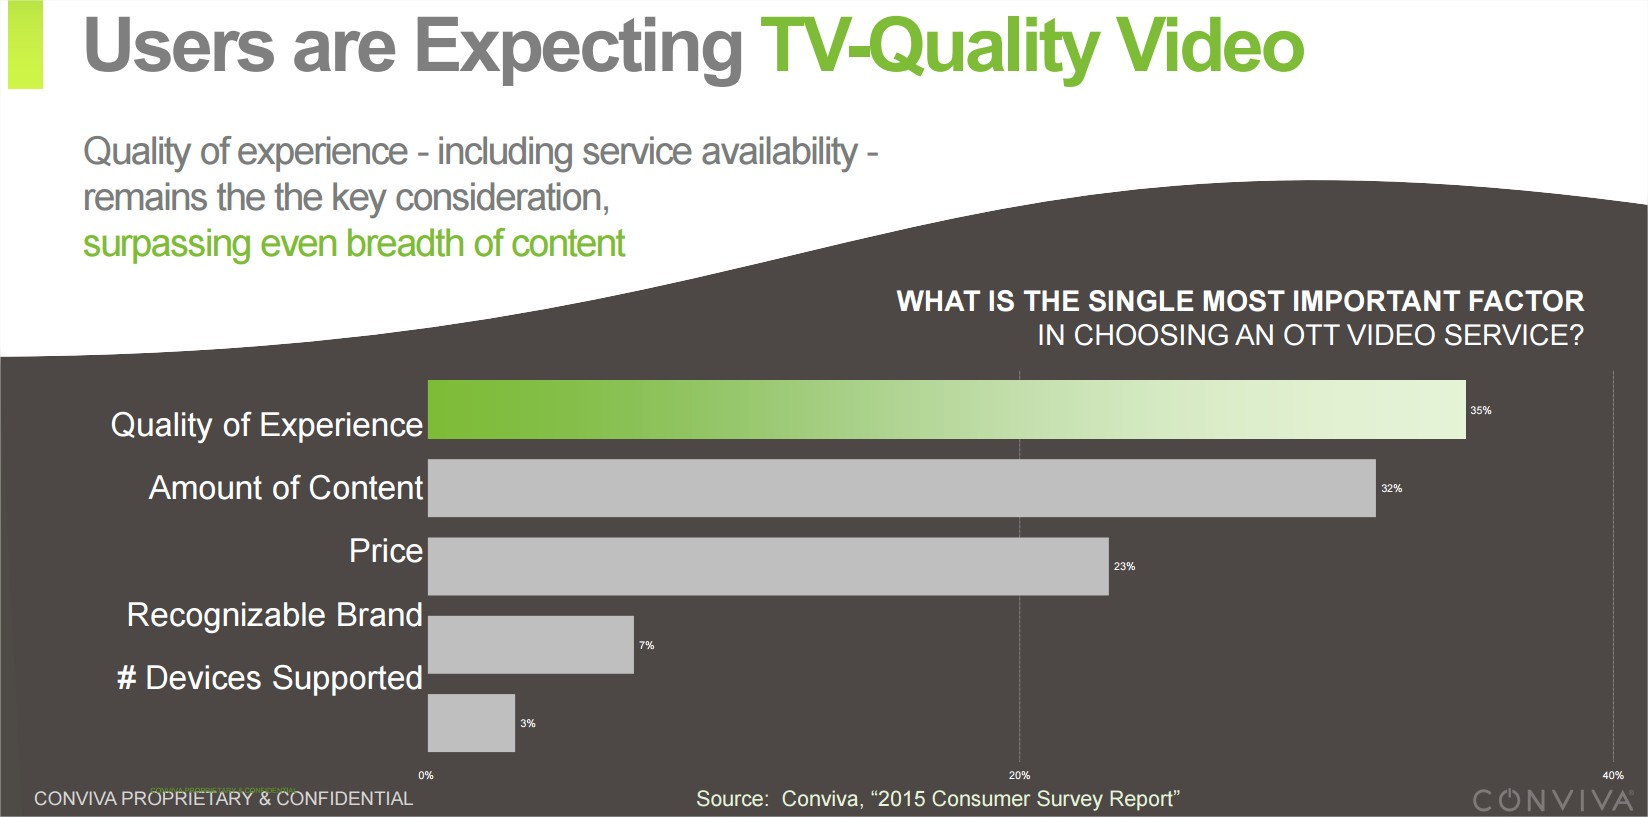 Quality of experience tops the list for viewers